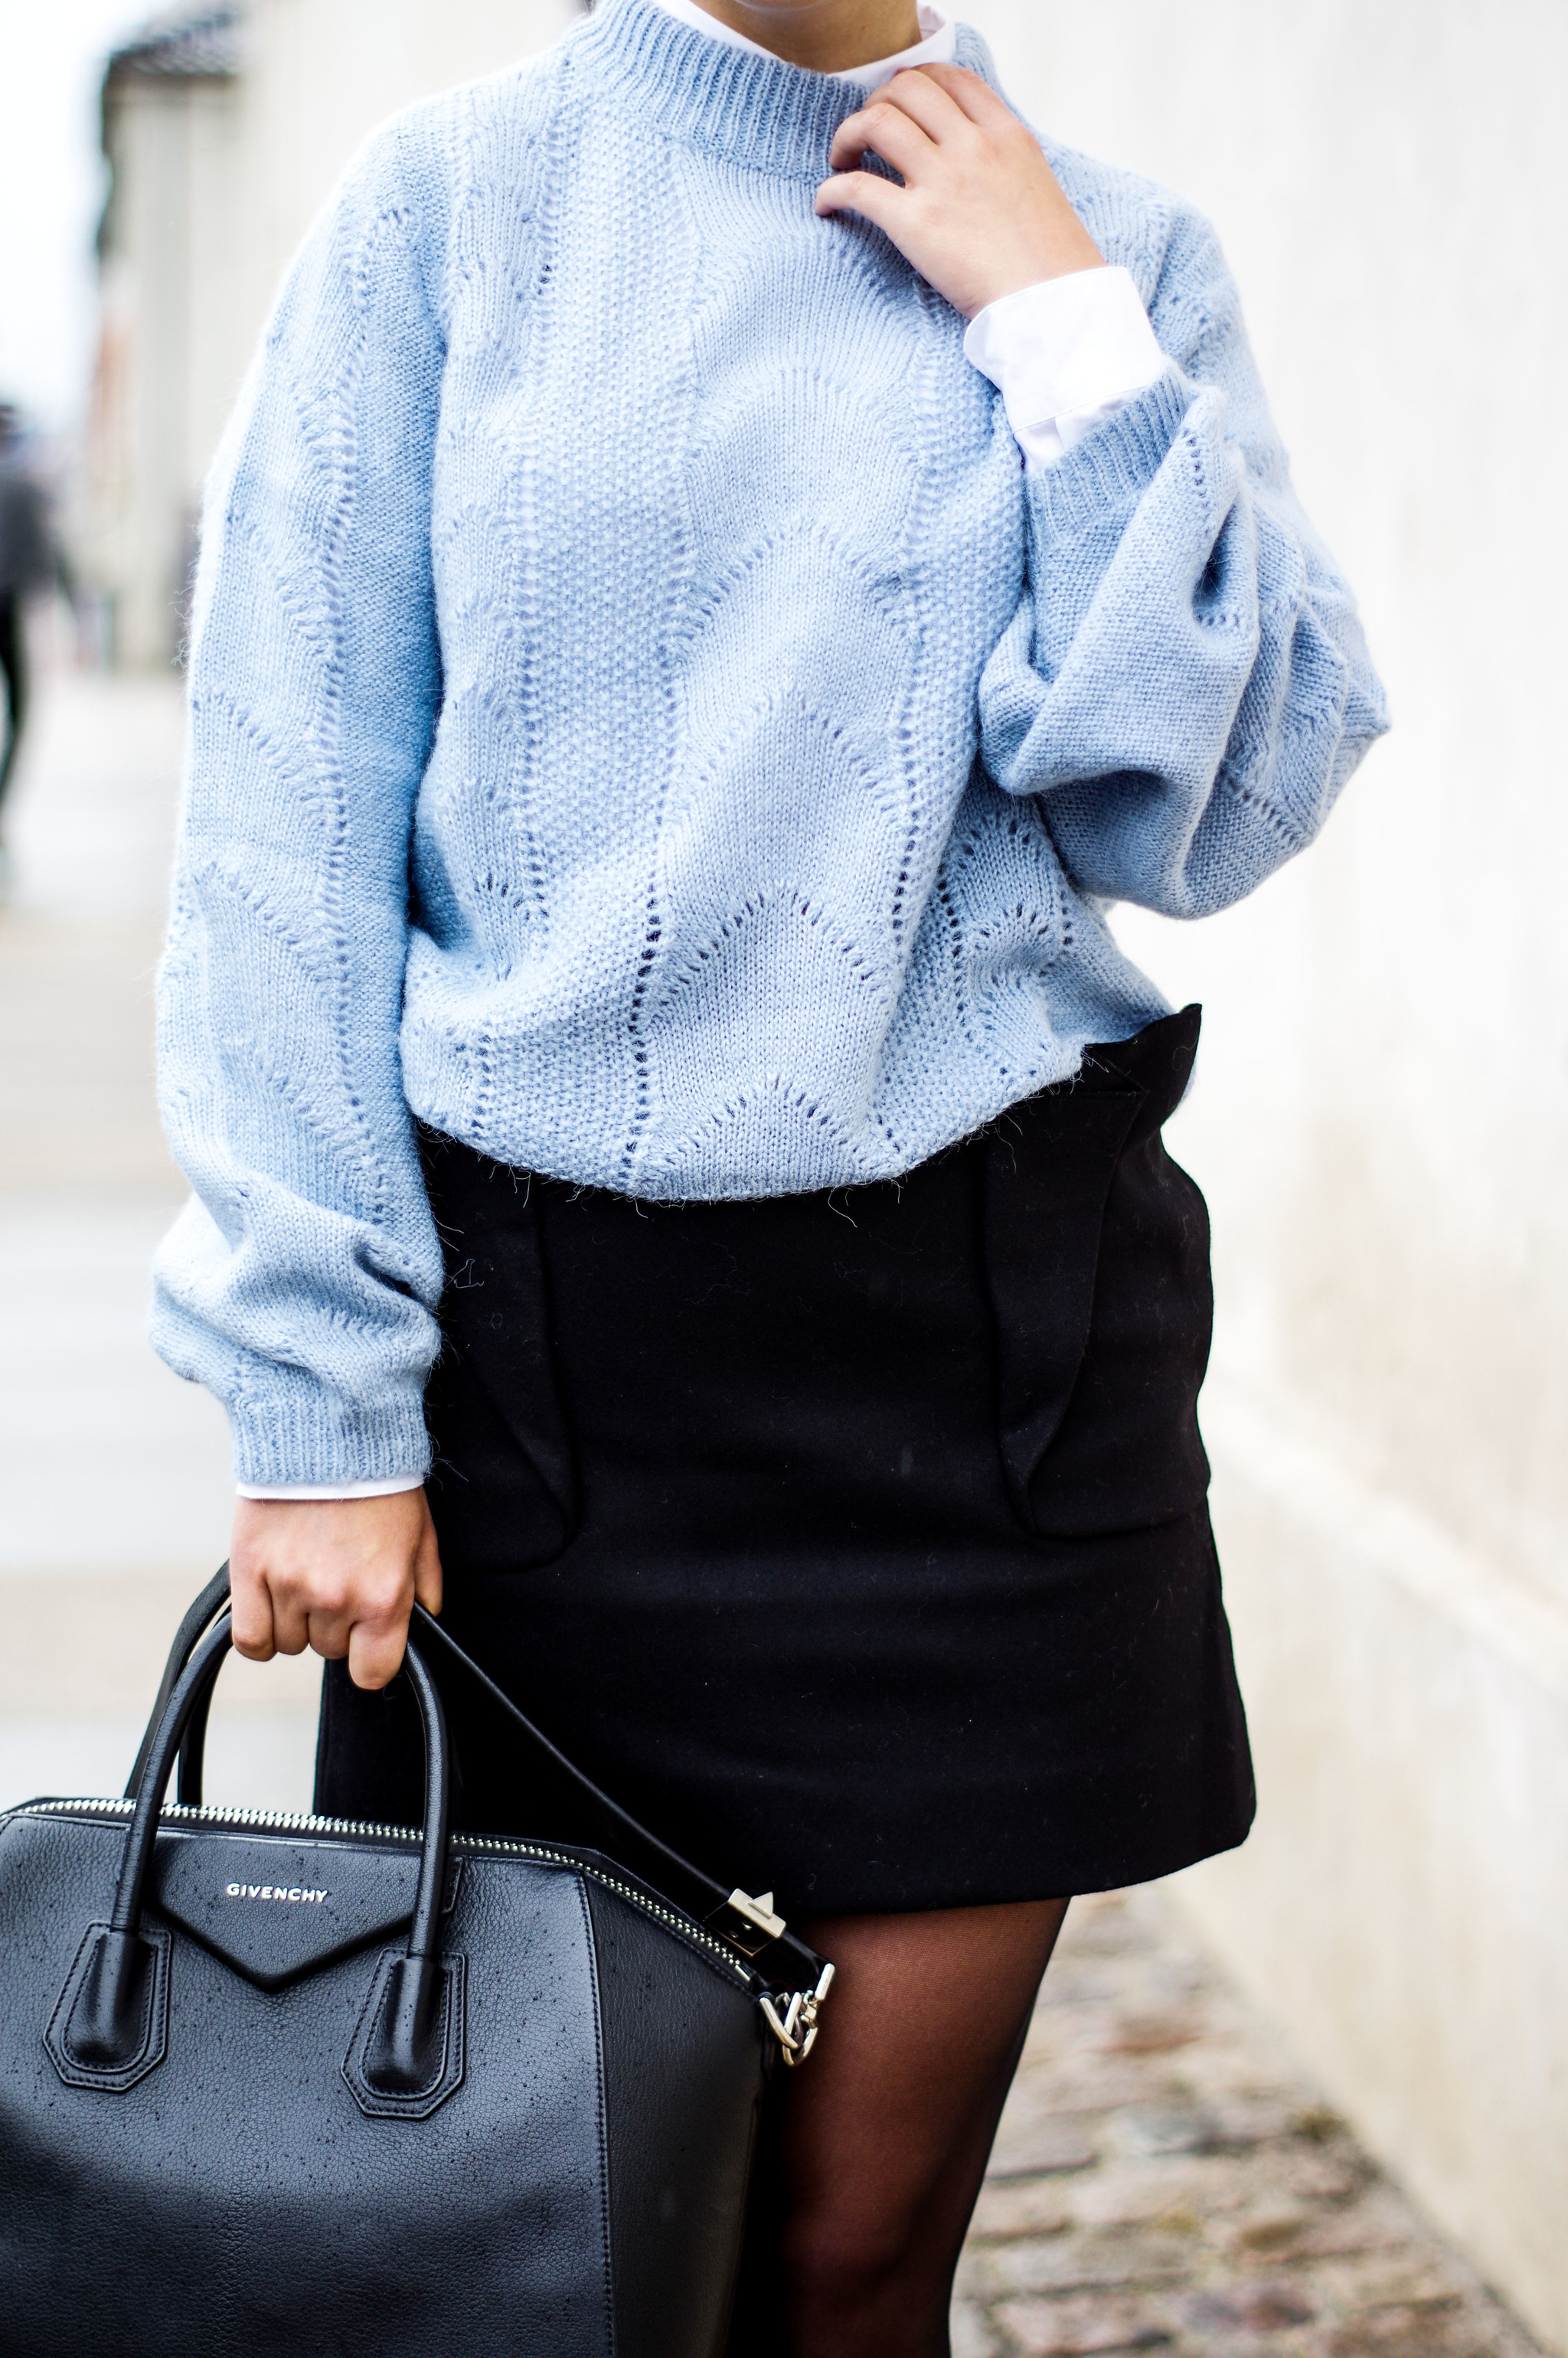 work wear outfits, layering, fall winter fashion, women outfits